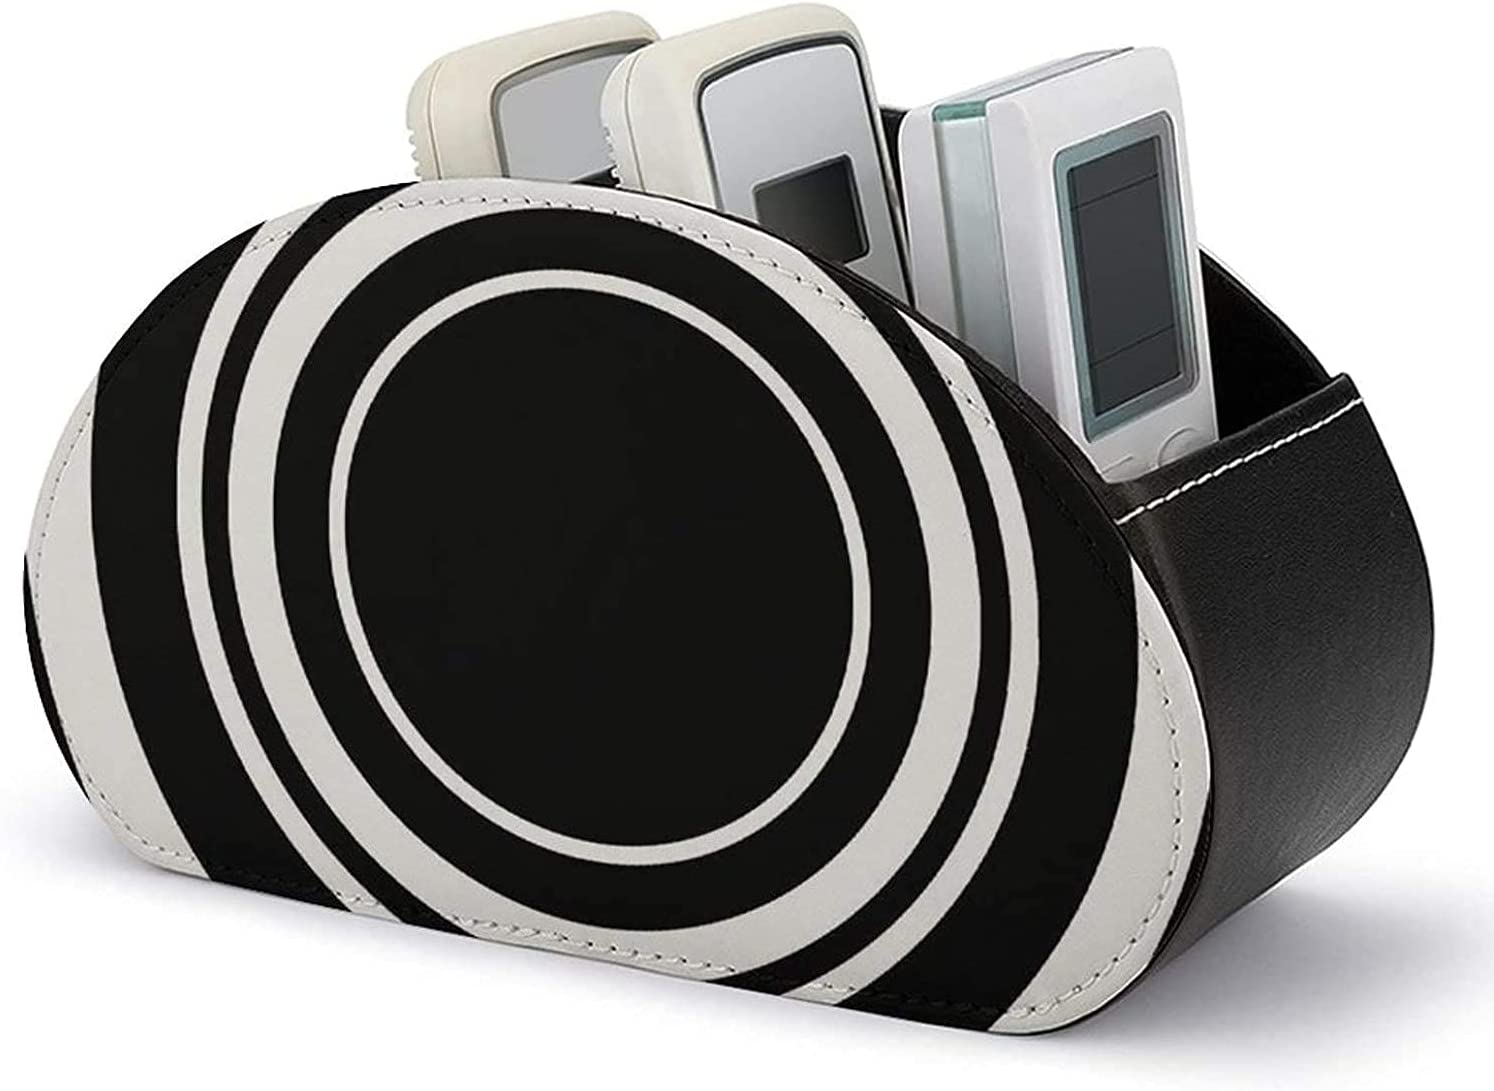 High quality new PU Leather Remote Brand new Control Holder and Christmas White Black Rings